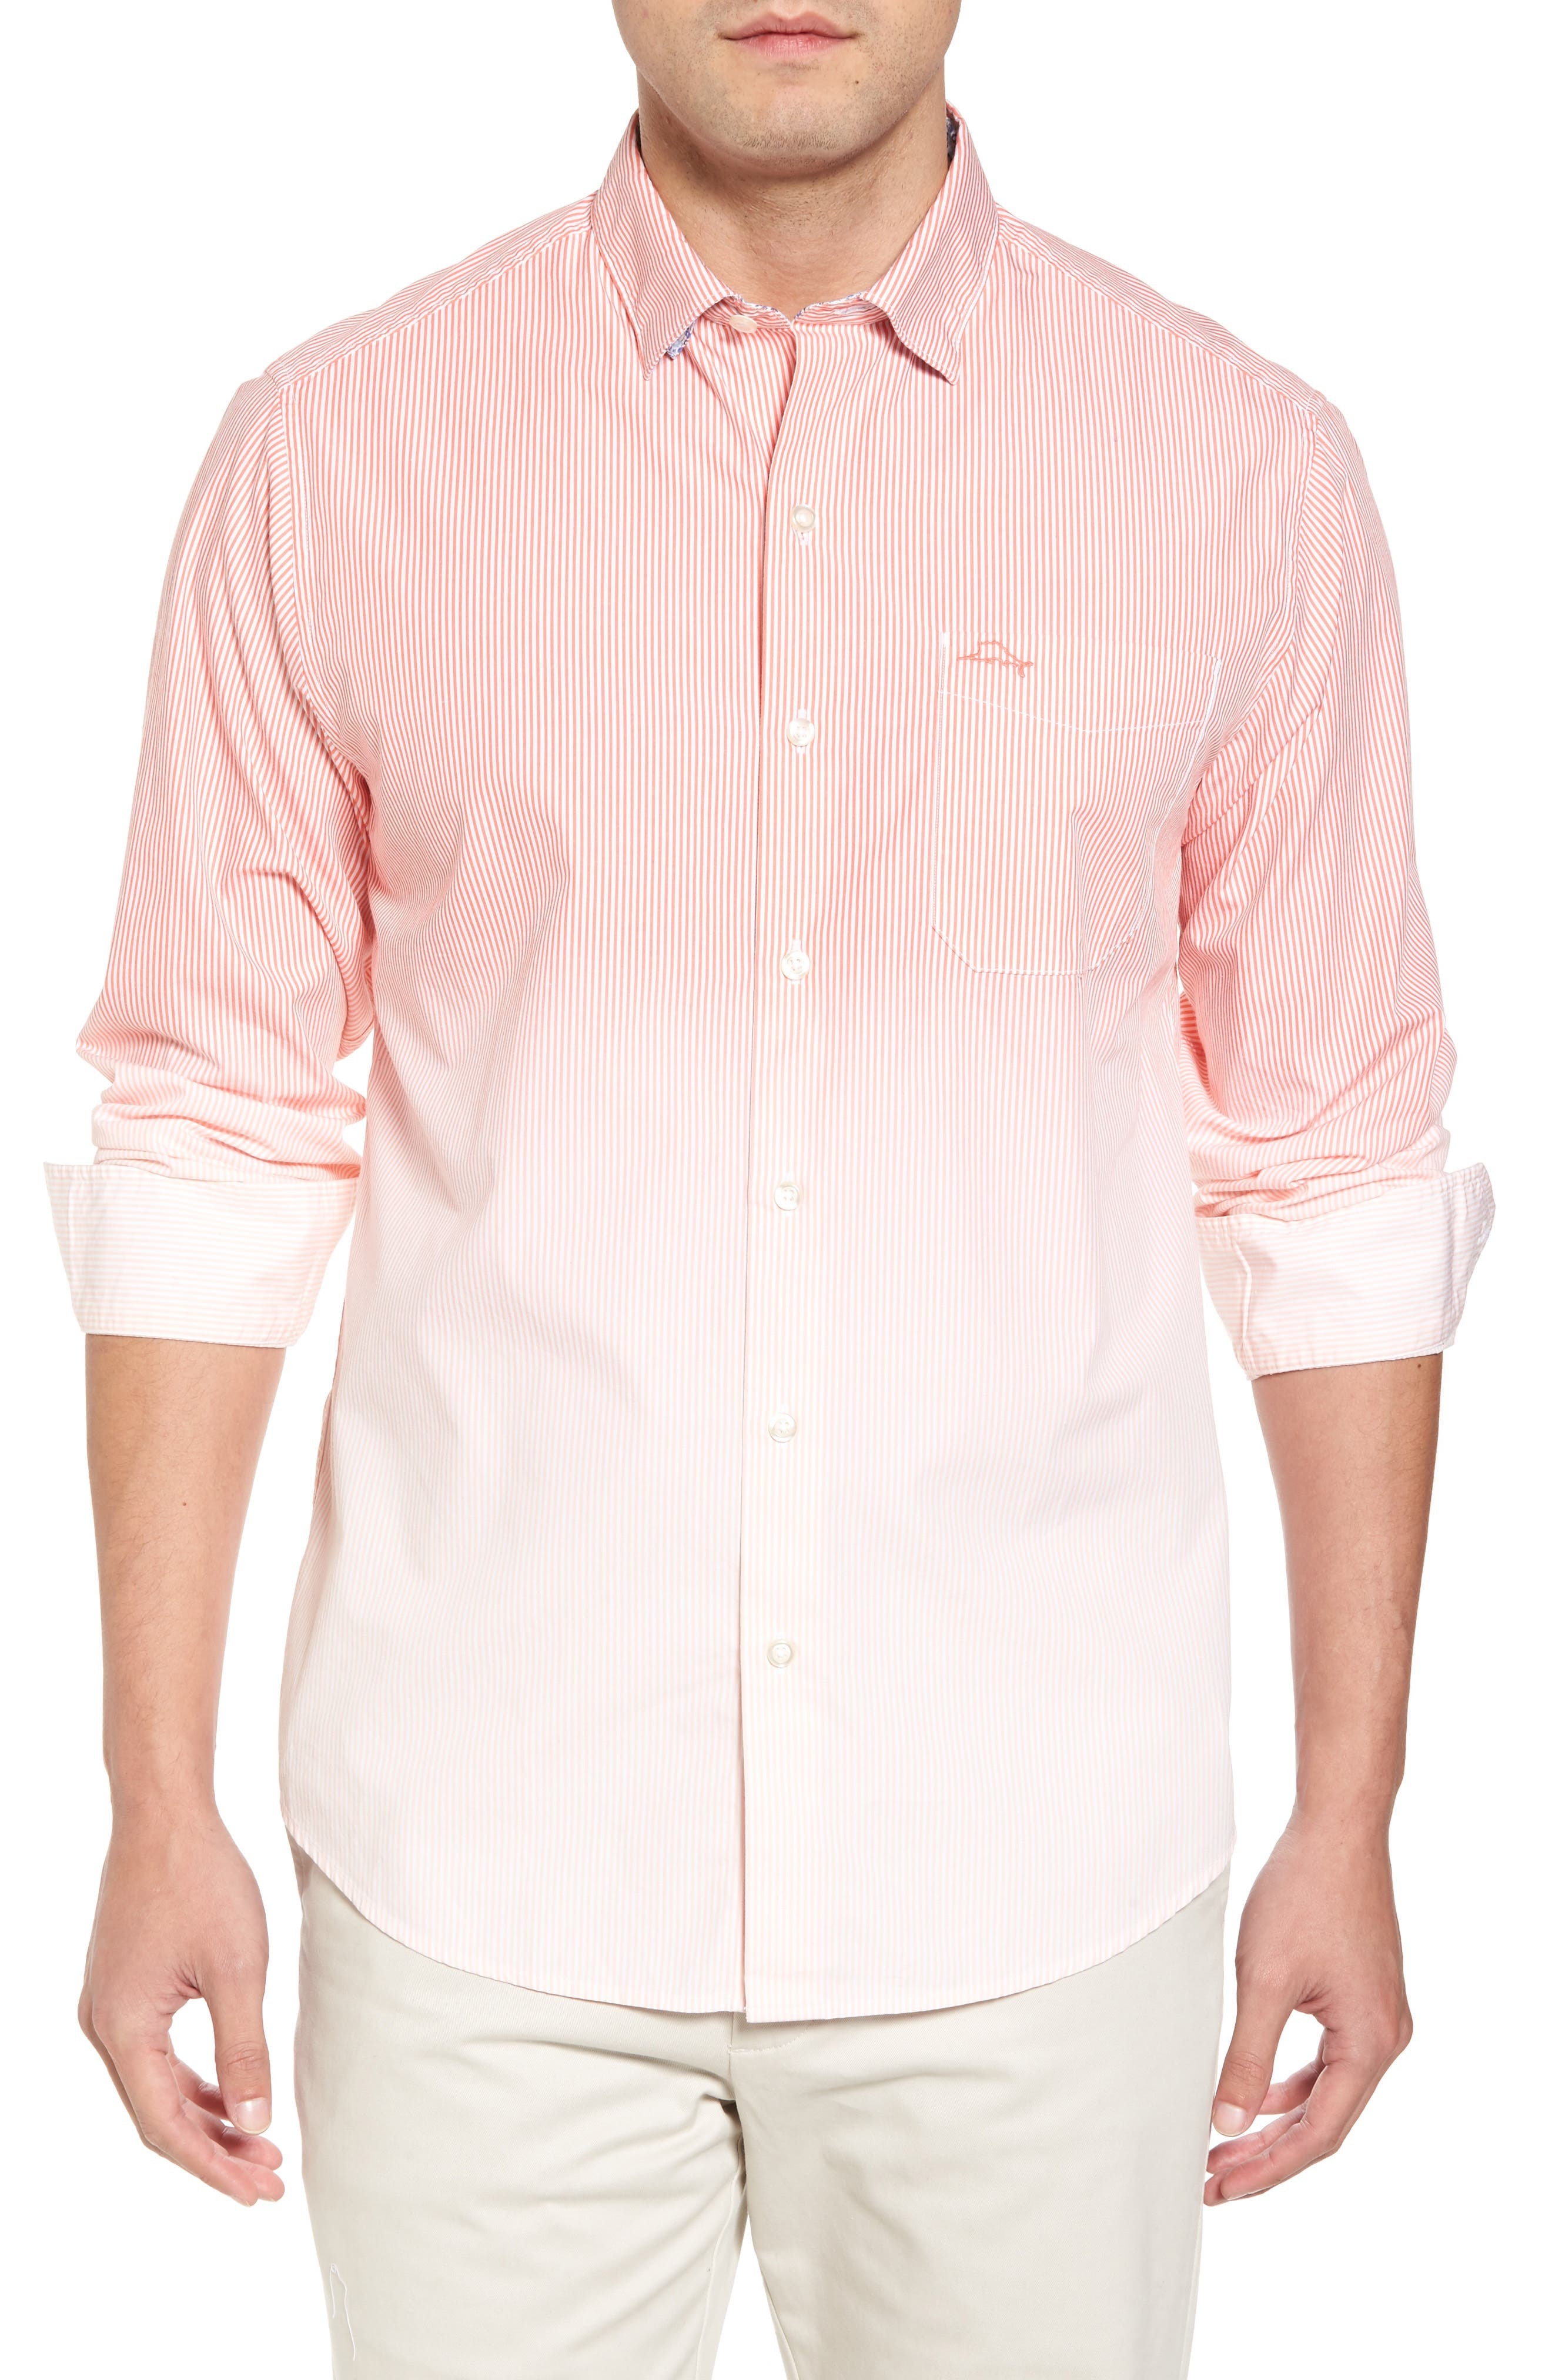 Fadeaway Beach Sport Shirt,                             Main thumbnail 1, color,                             950